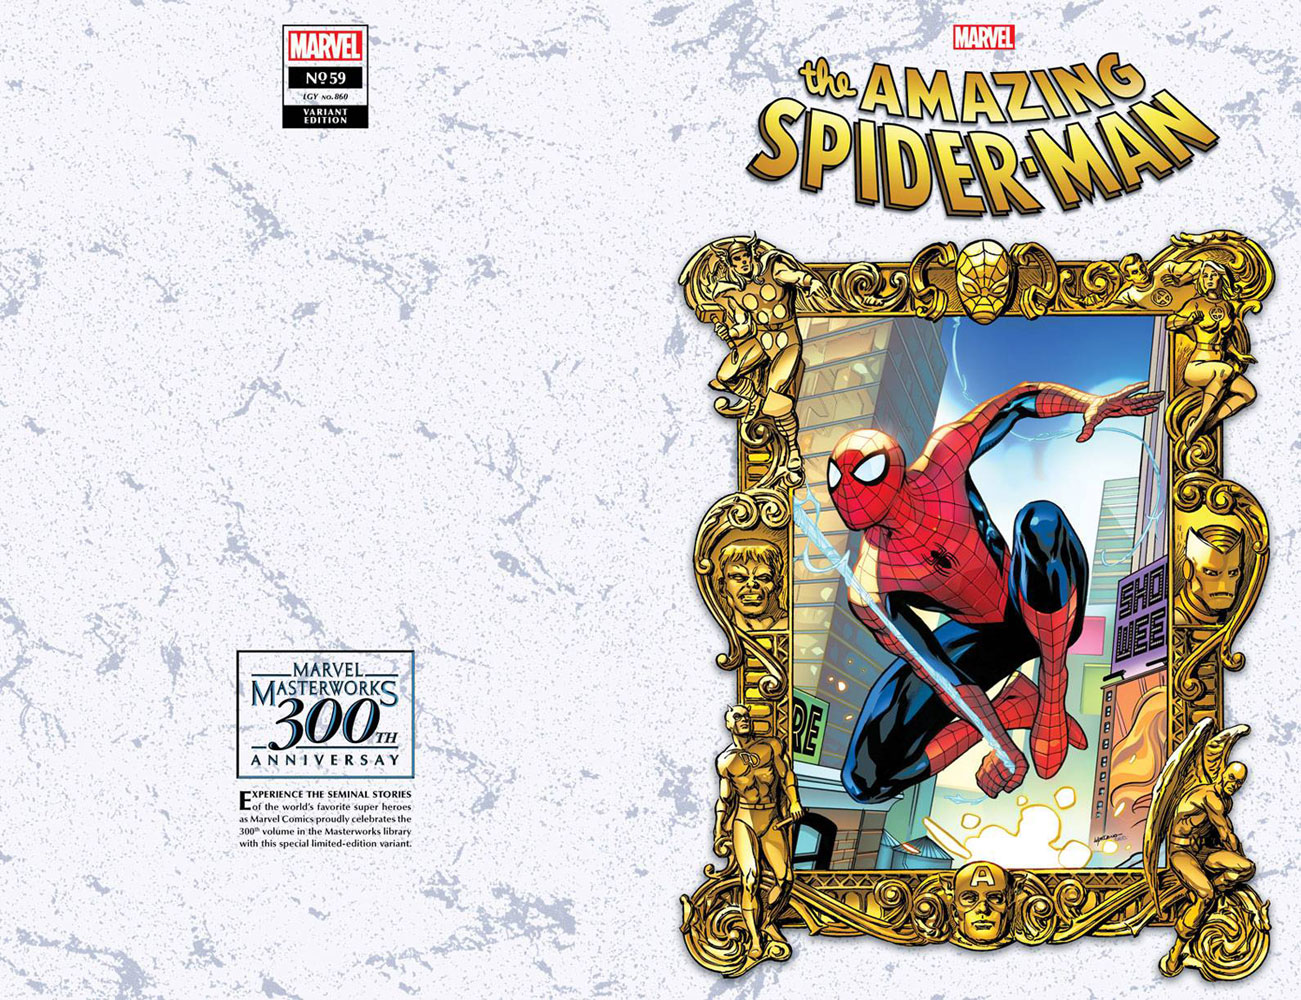 Amazing Spider-Man #59 (variant Masterworks cover - Lupacchino)  [2021] - Marvel Comics